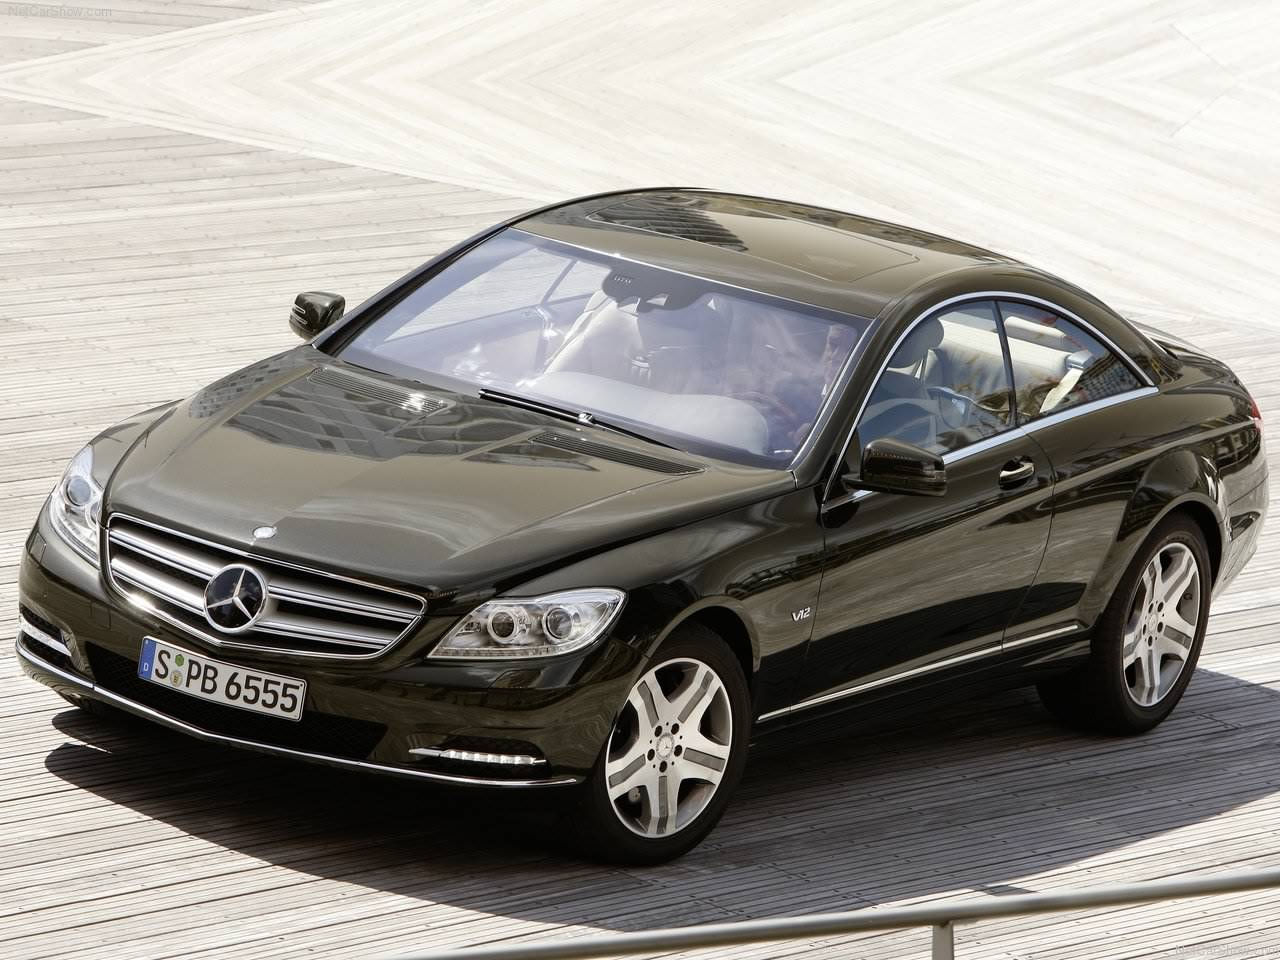 Mercedes benz auto car 2011 mercedes benz cl class for Cars of mercedes benz